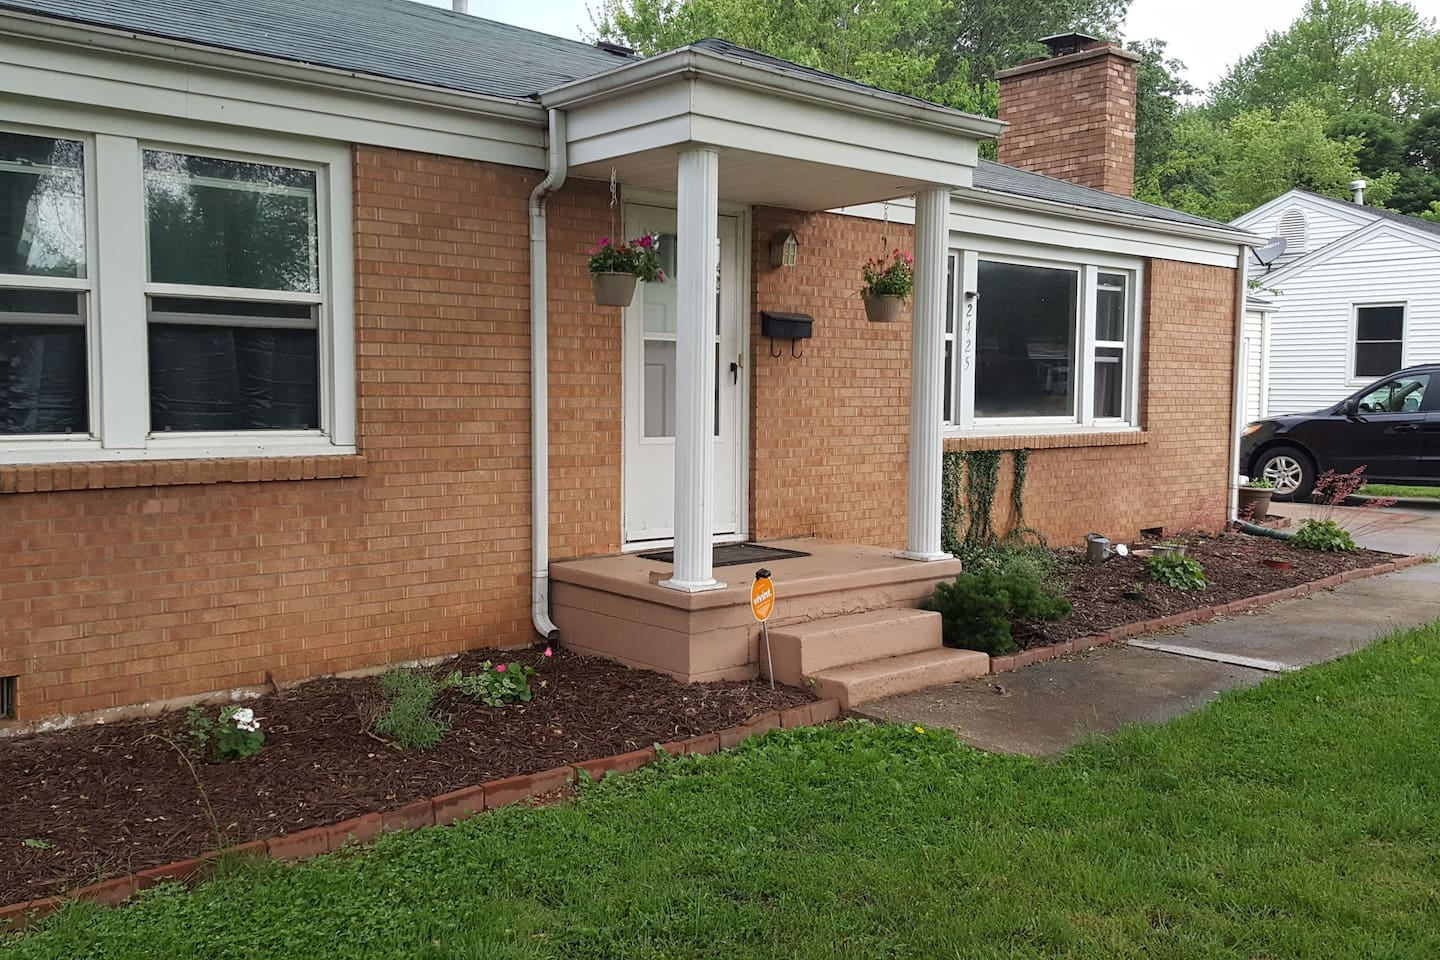 Front of the house, newly planted flowers